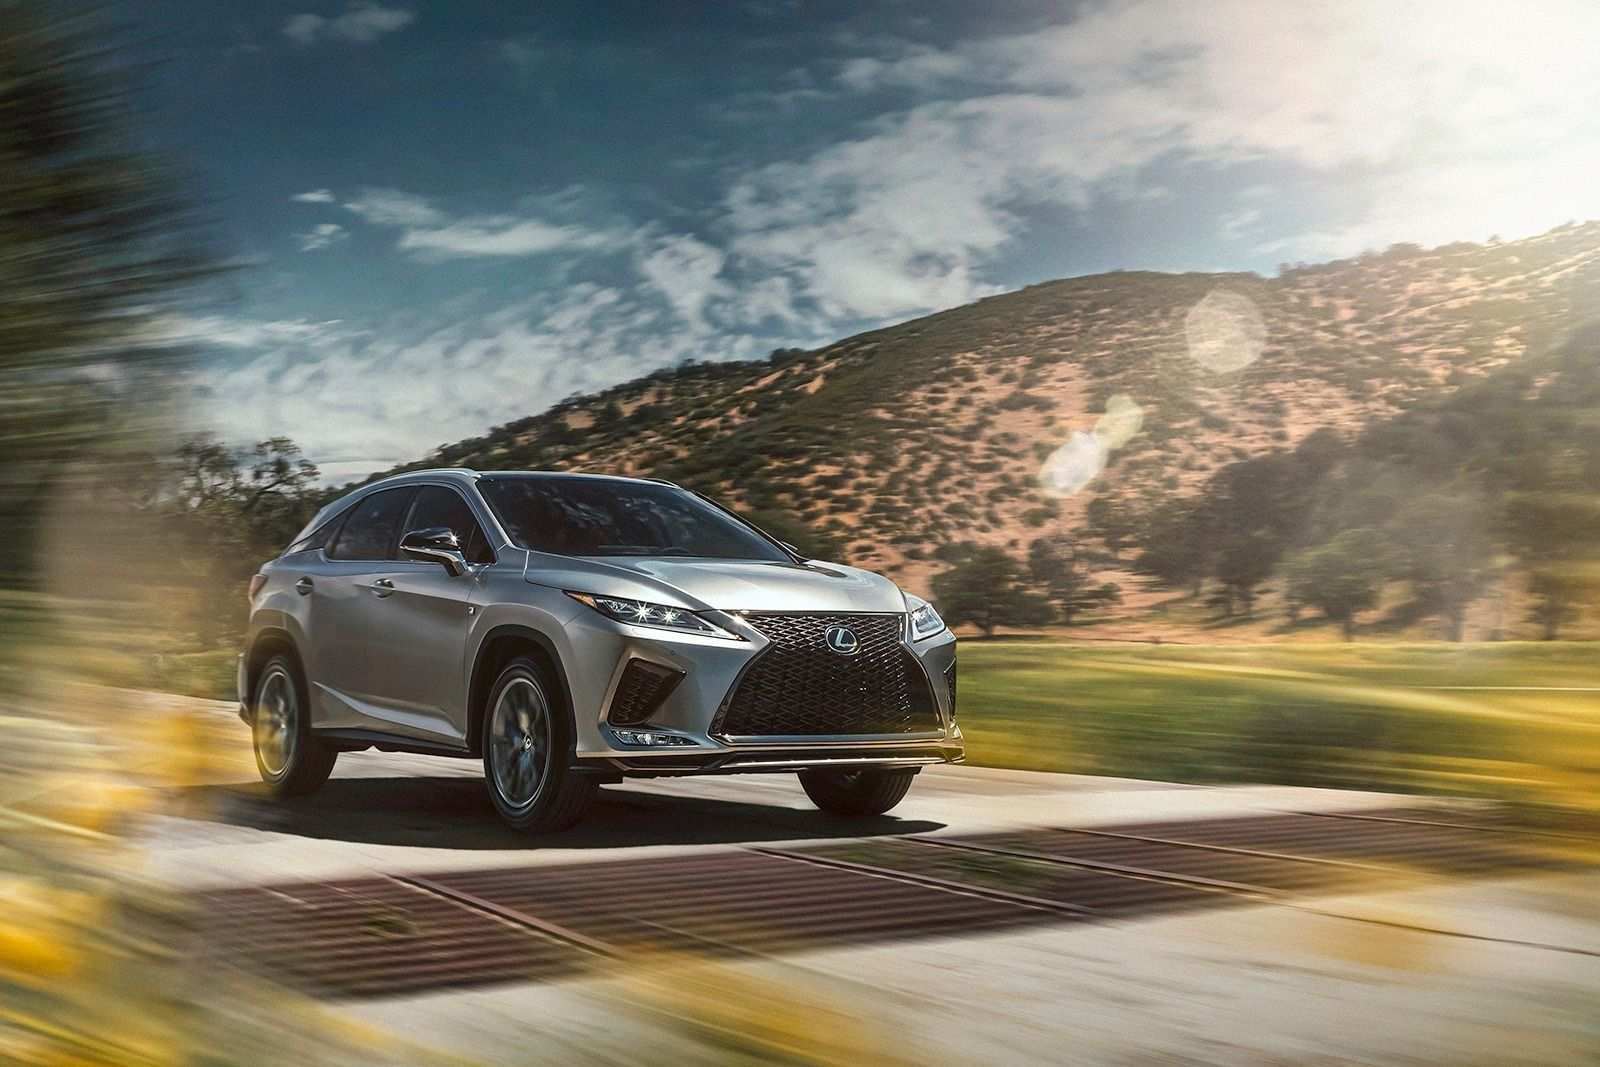 85 Best When Will The 2020 Lexus Rx 350 Be Available Price And Release Date